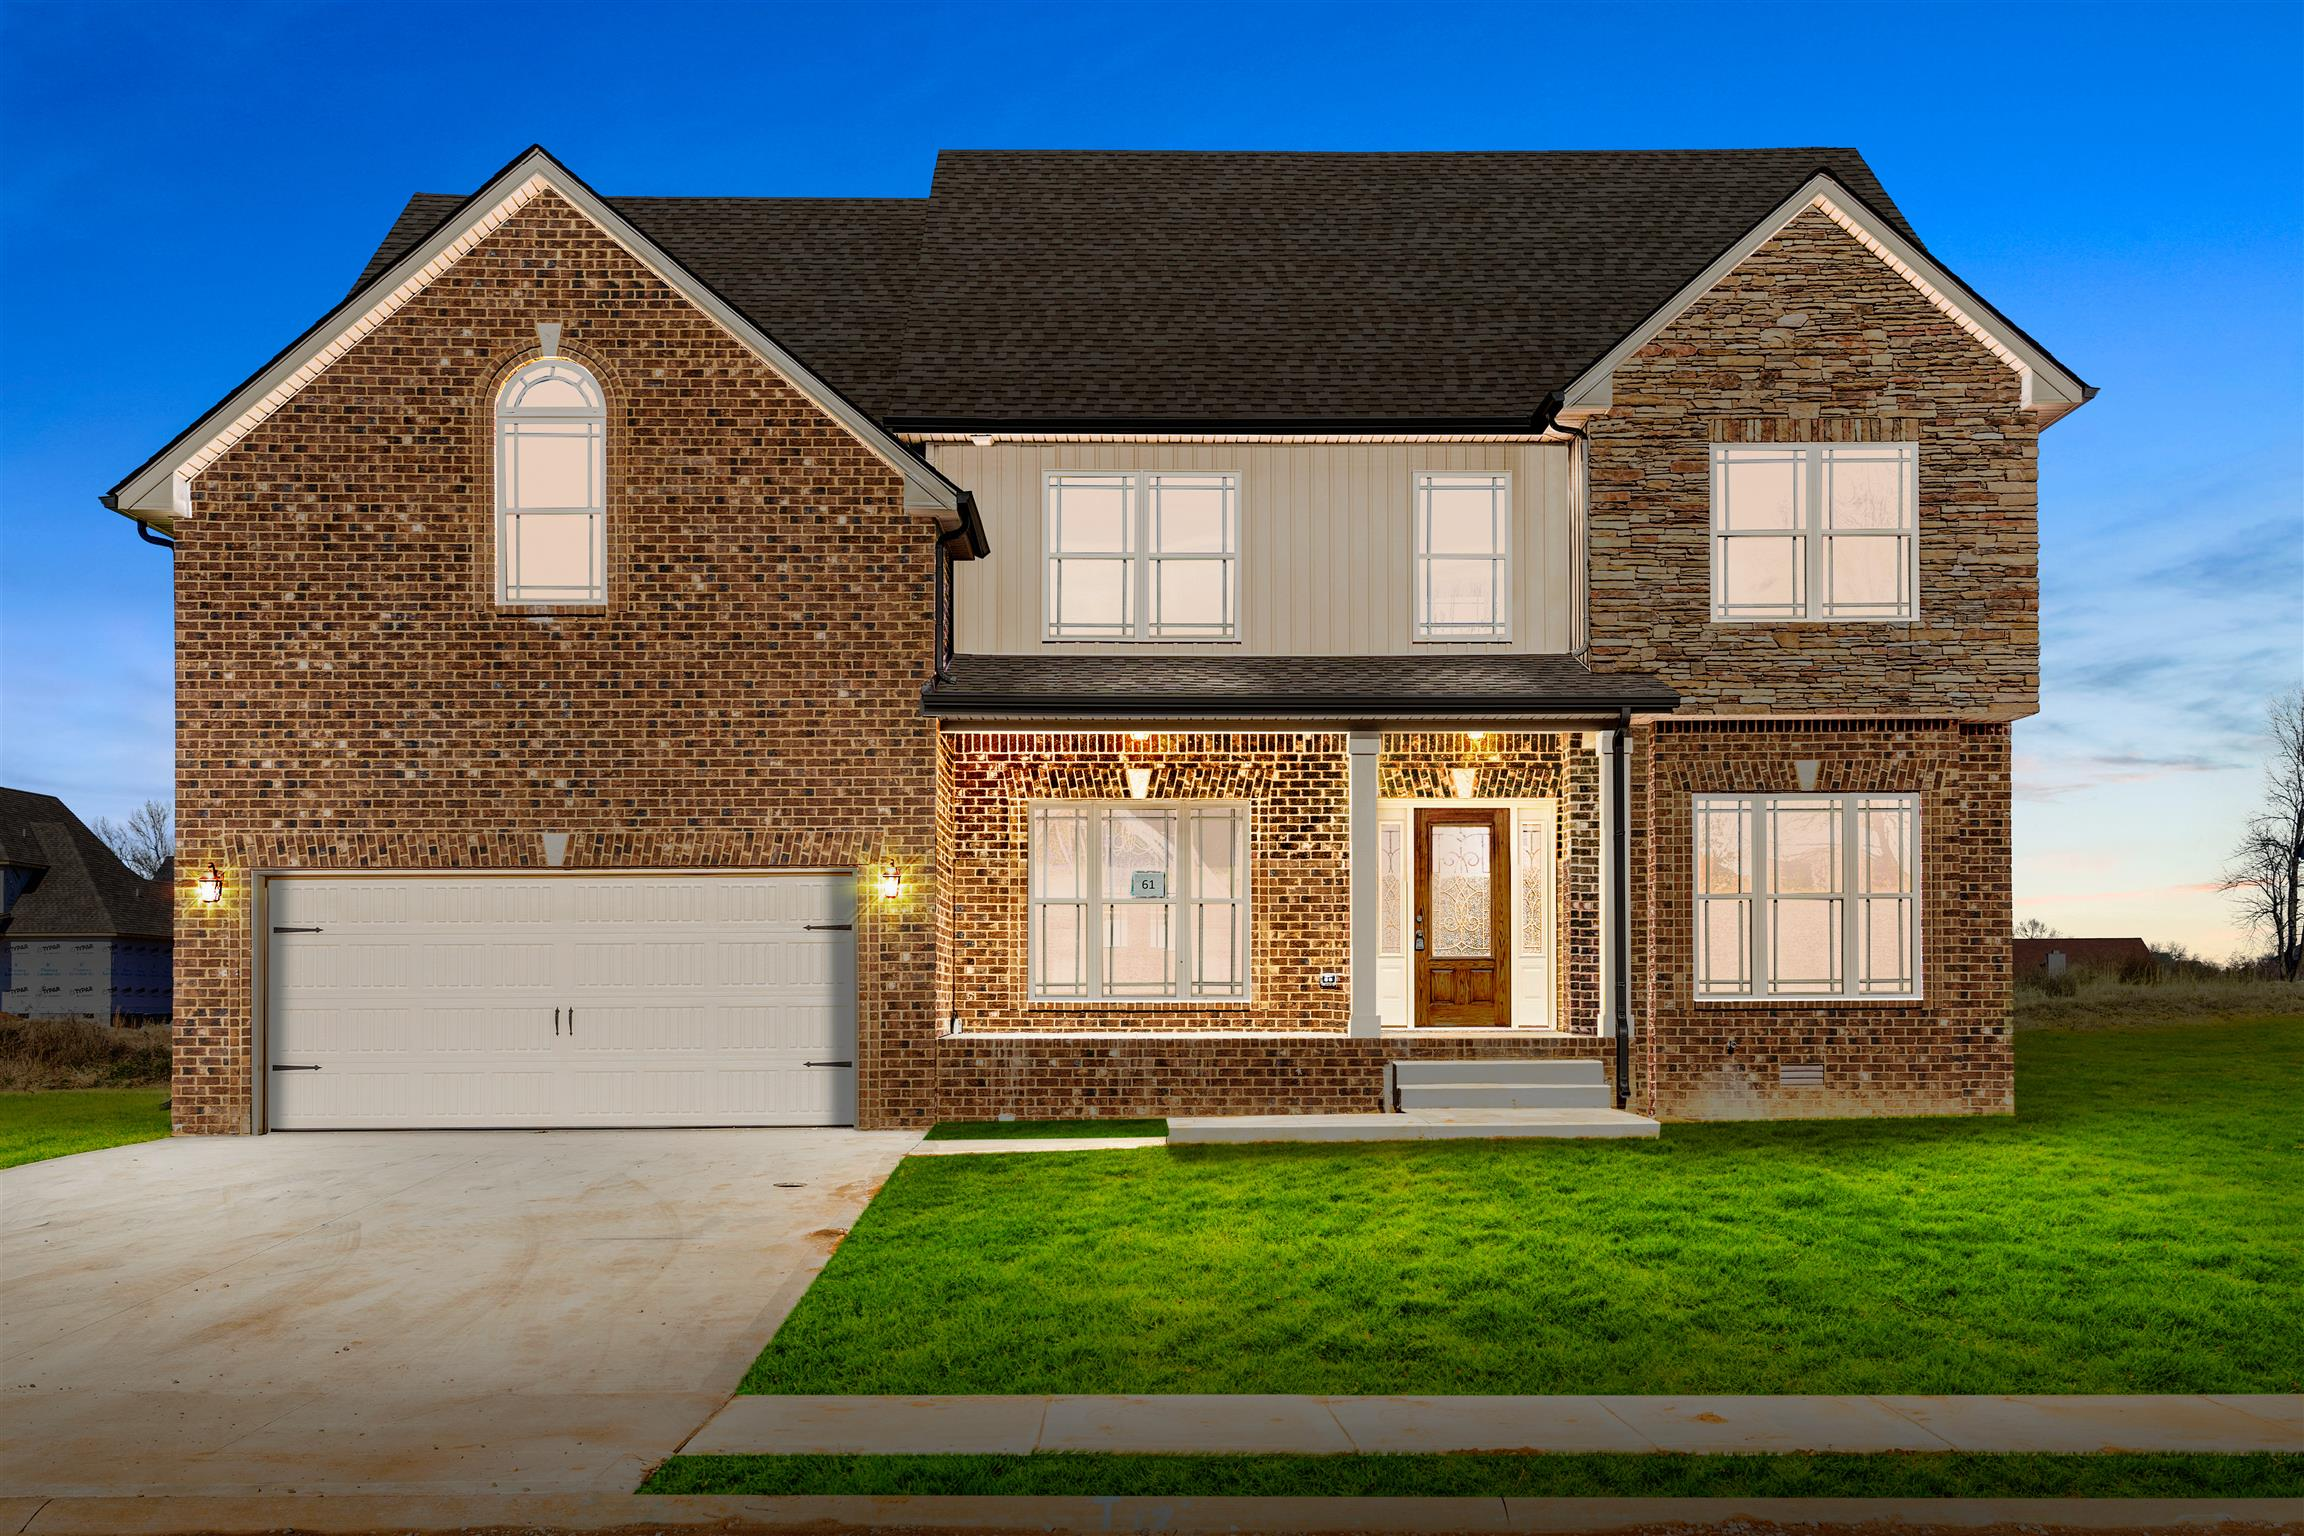 61 Woodford Estates, Clarksville, Tennessee